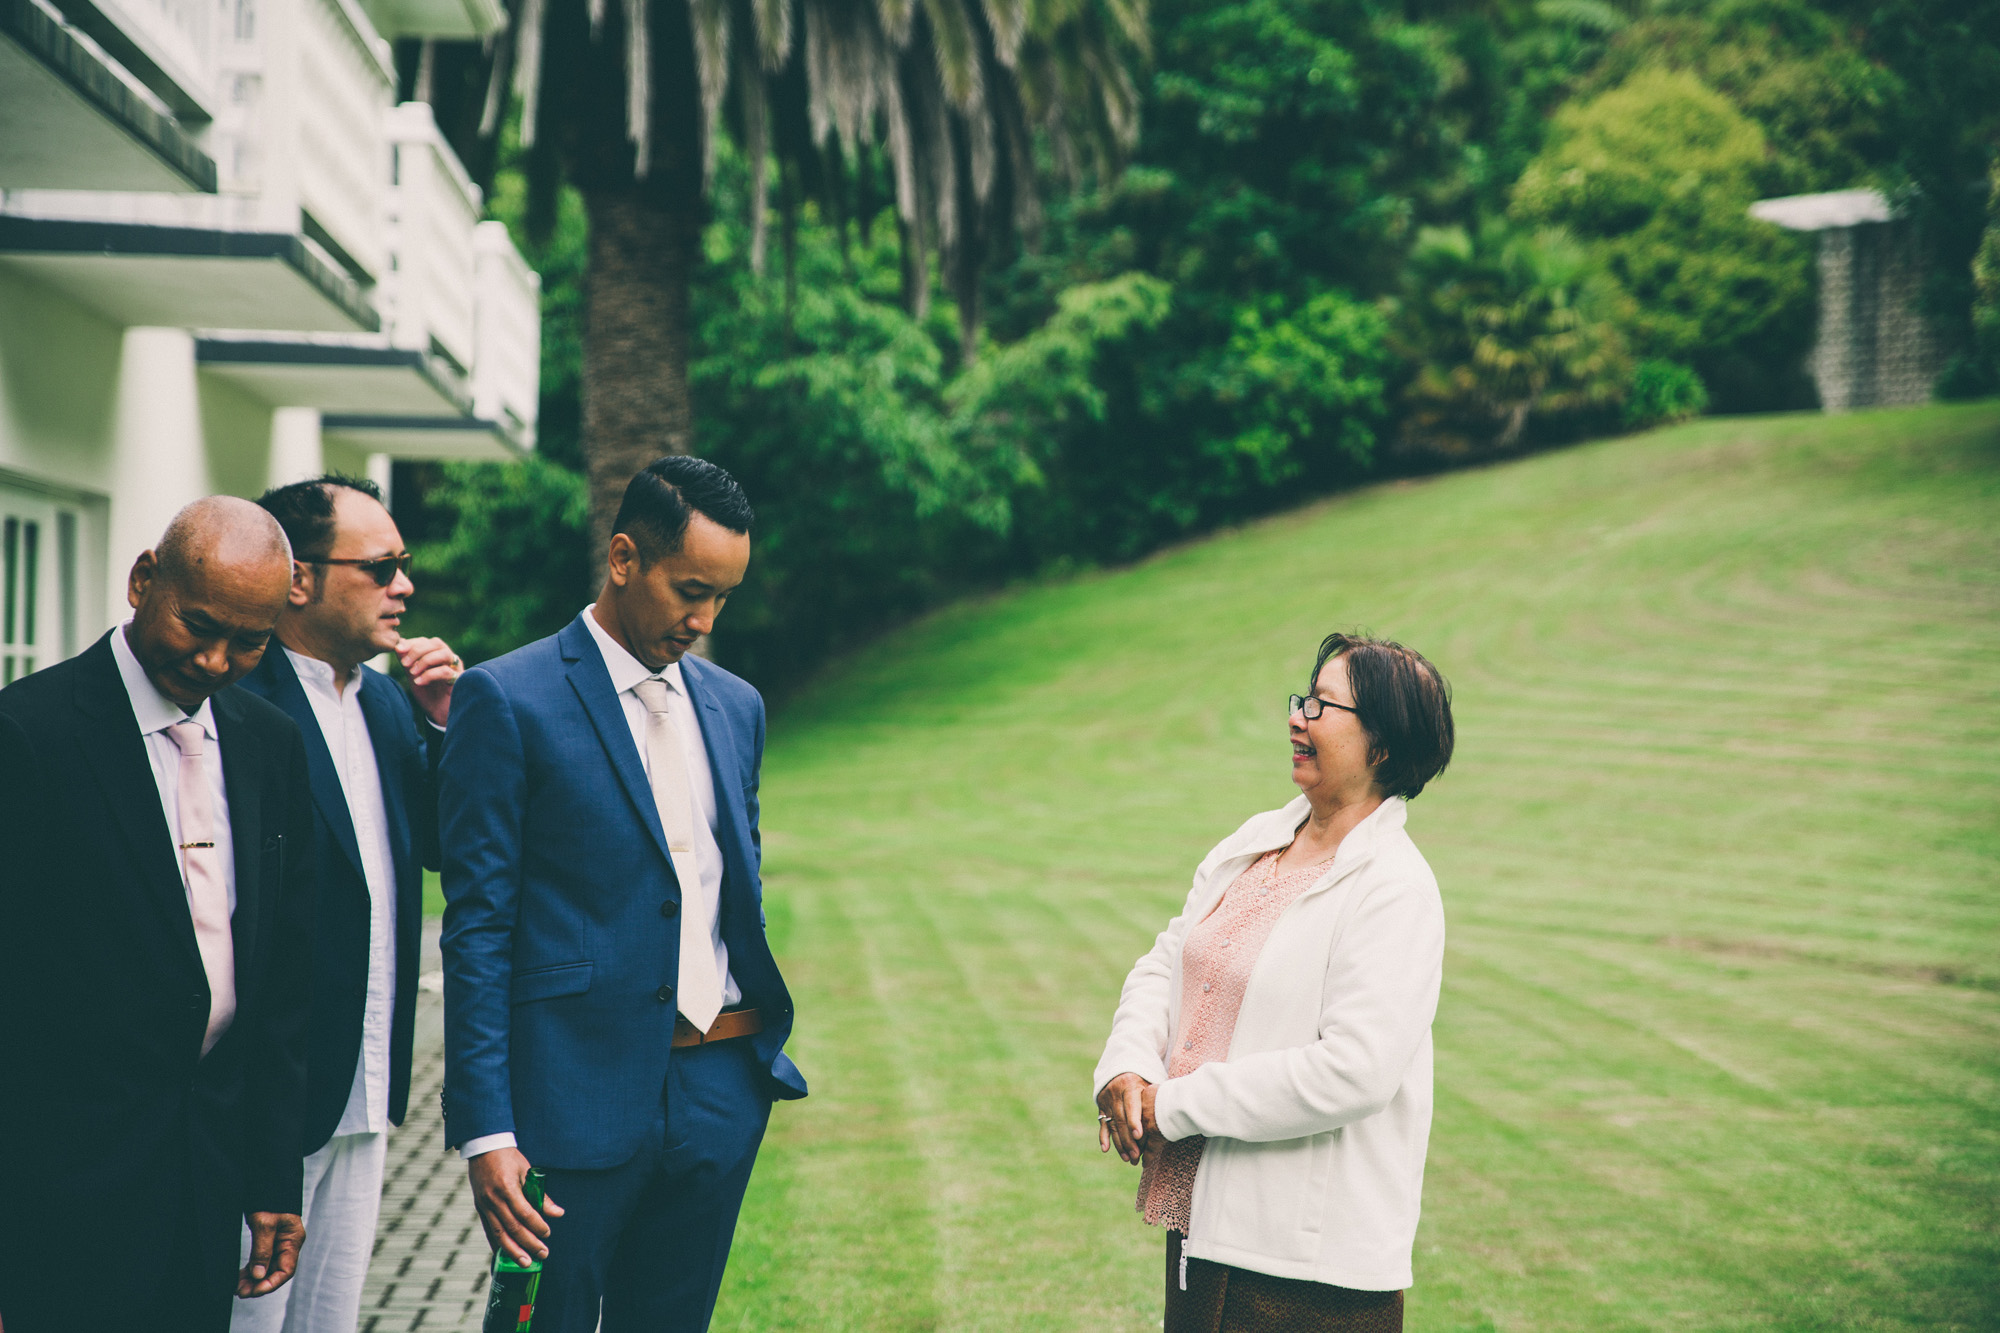 Sarah_McEvoy_Wellington_Wedding_Photographer_032.jpg